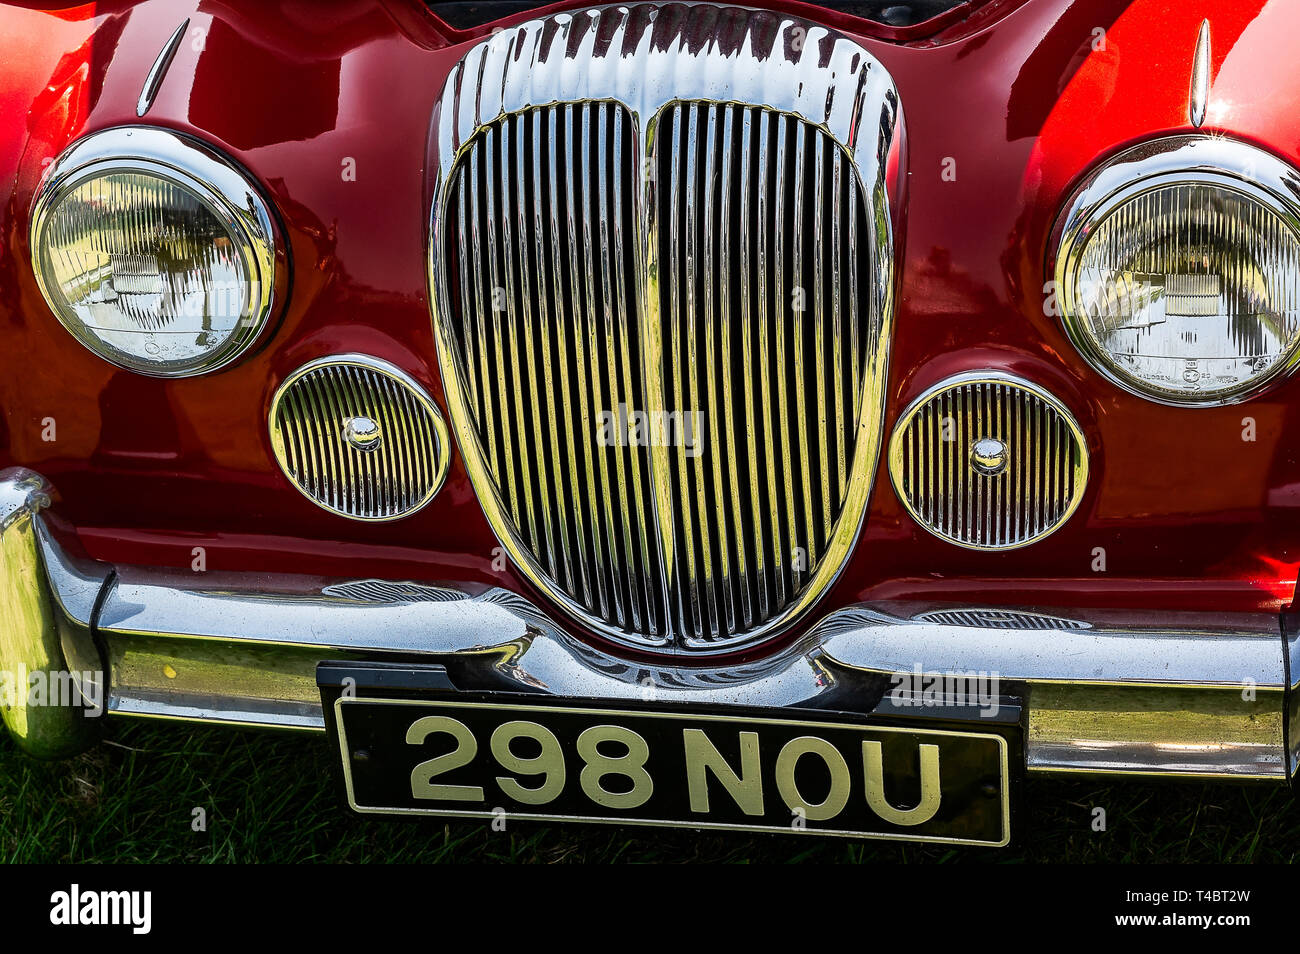 A 1964 Daimler 2.5L saloon on display at a car show - Stock Image